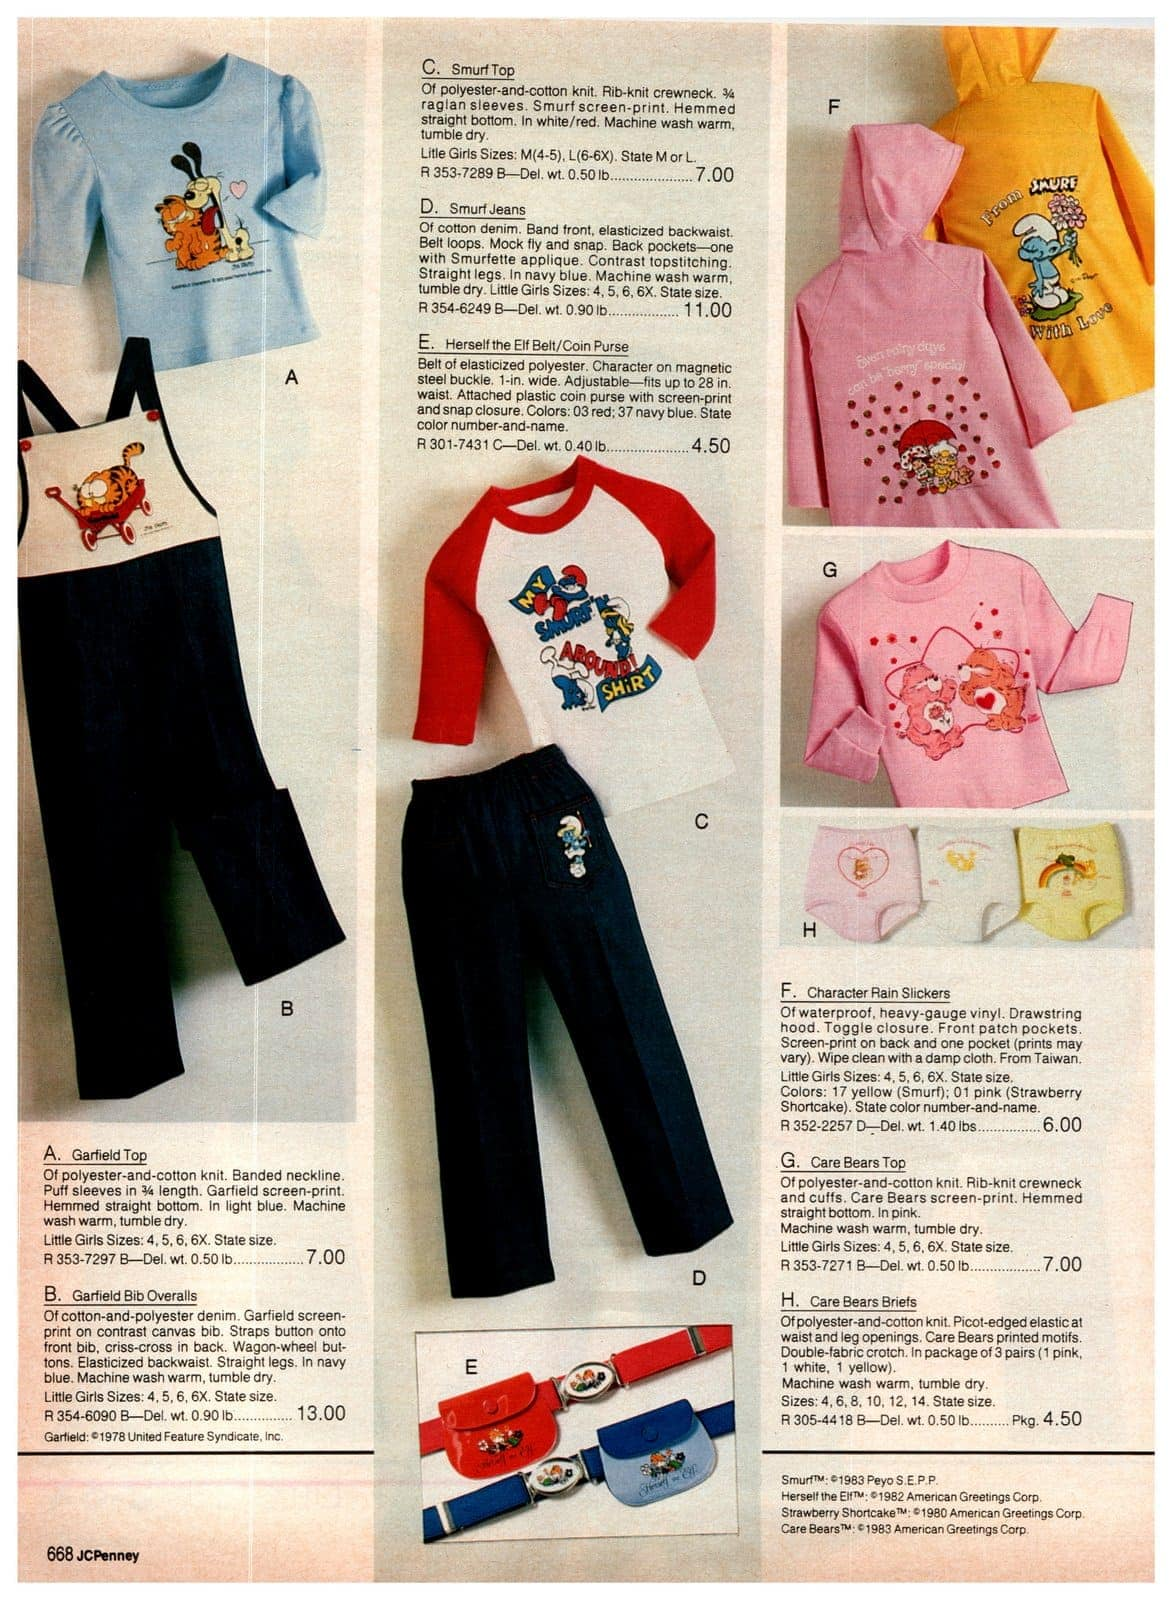 Garfield, Smurf, Herself the Elf, Strawberry Shortcake, Care Bears and other character clothes for little girls